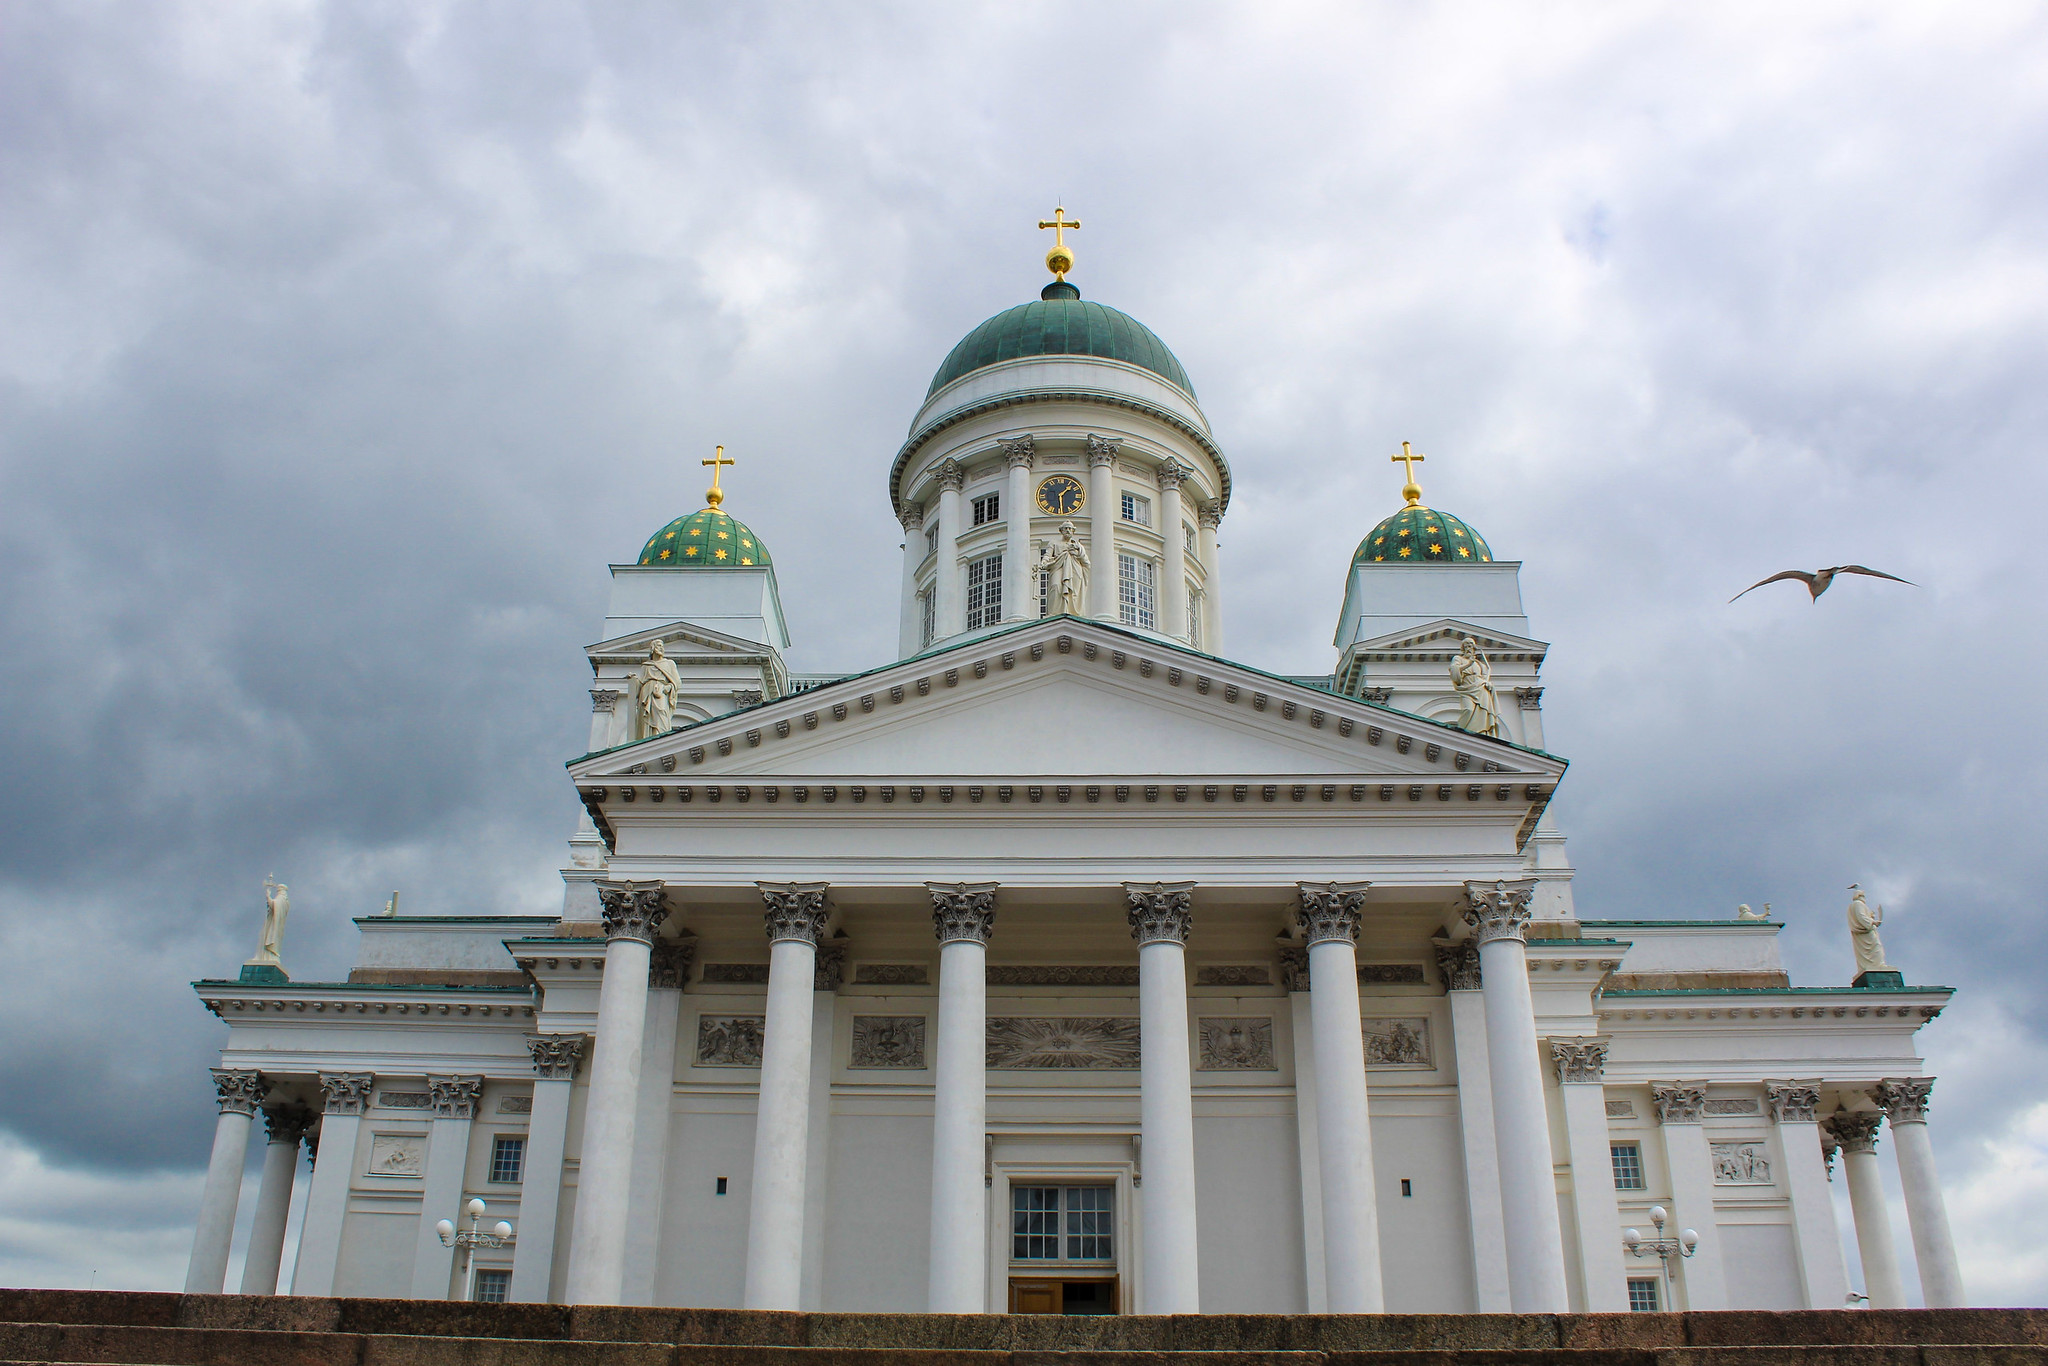 spend time at the cathedrals with 24 hours in helsinki